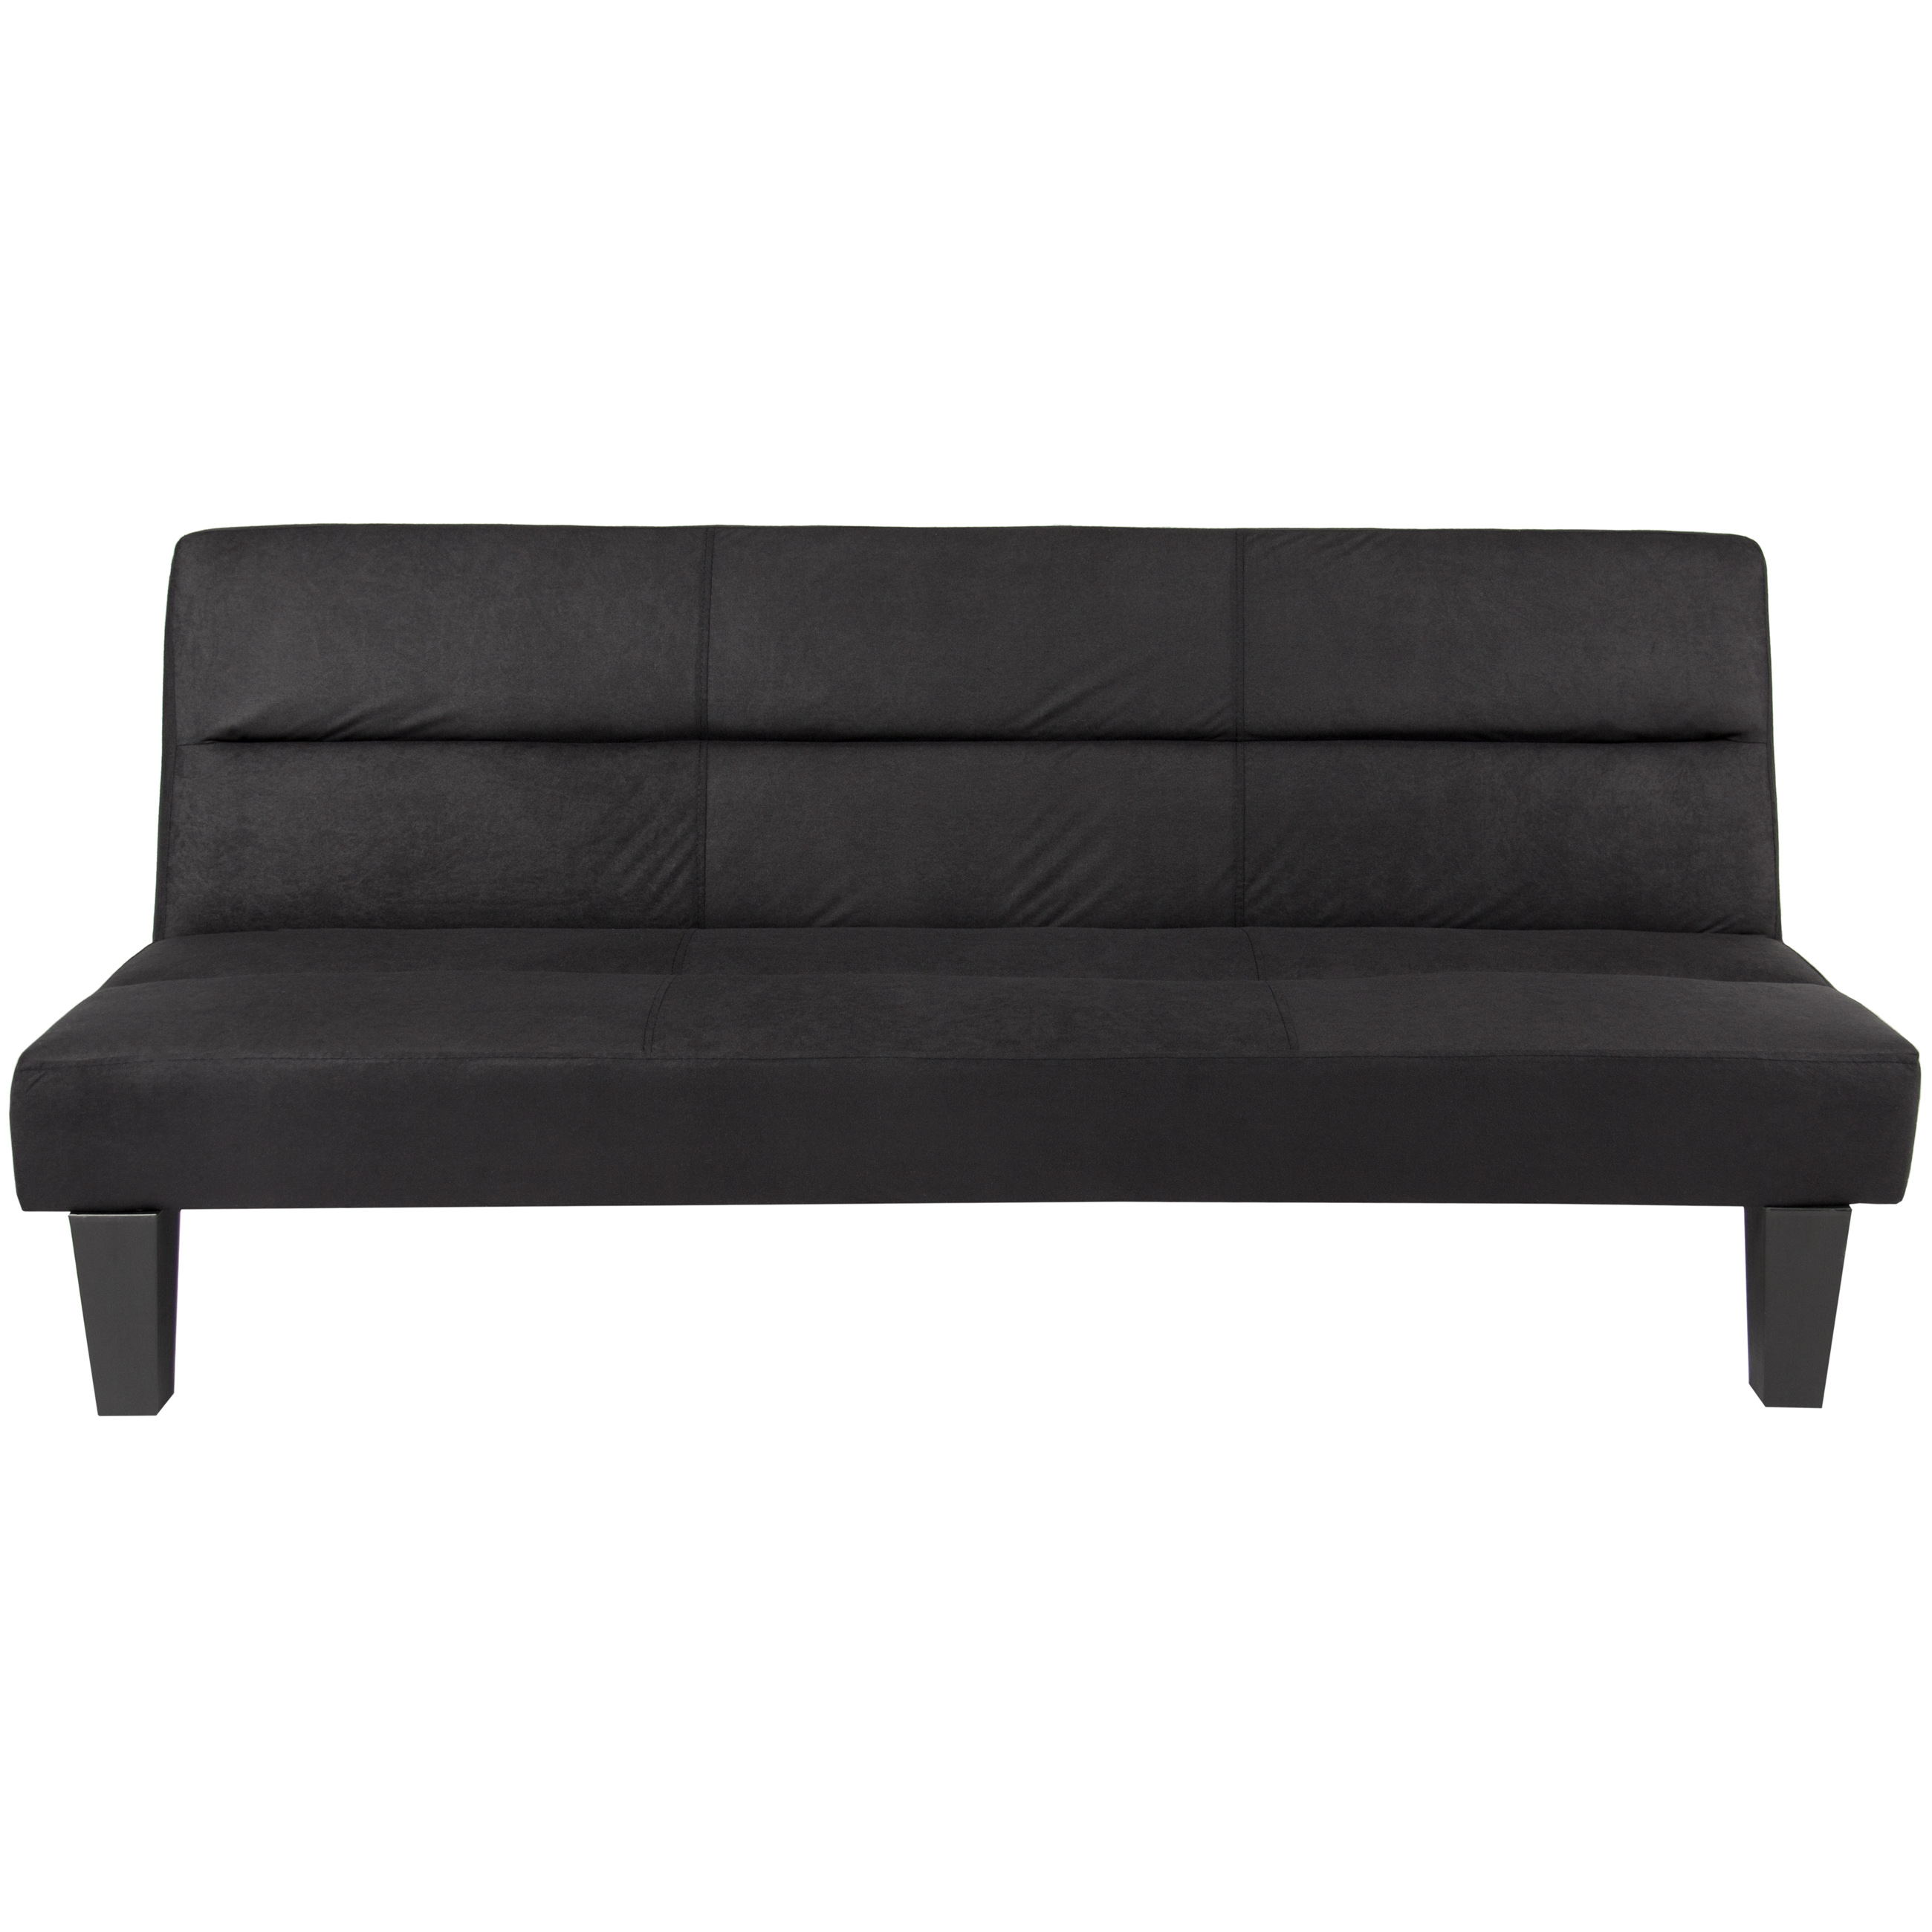 room for set city living bed sofa unique design futon piece